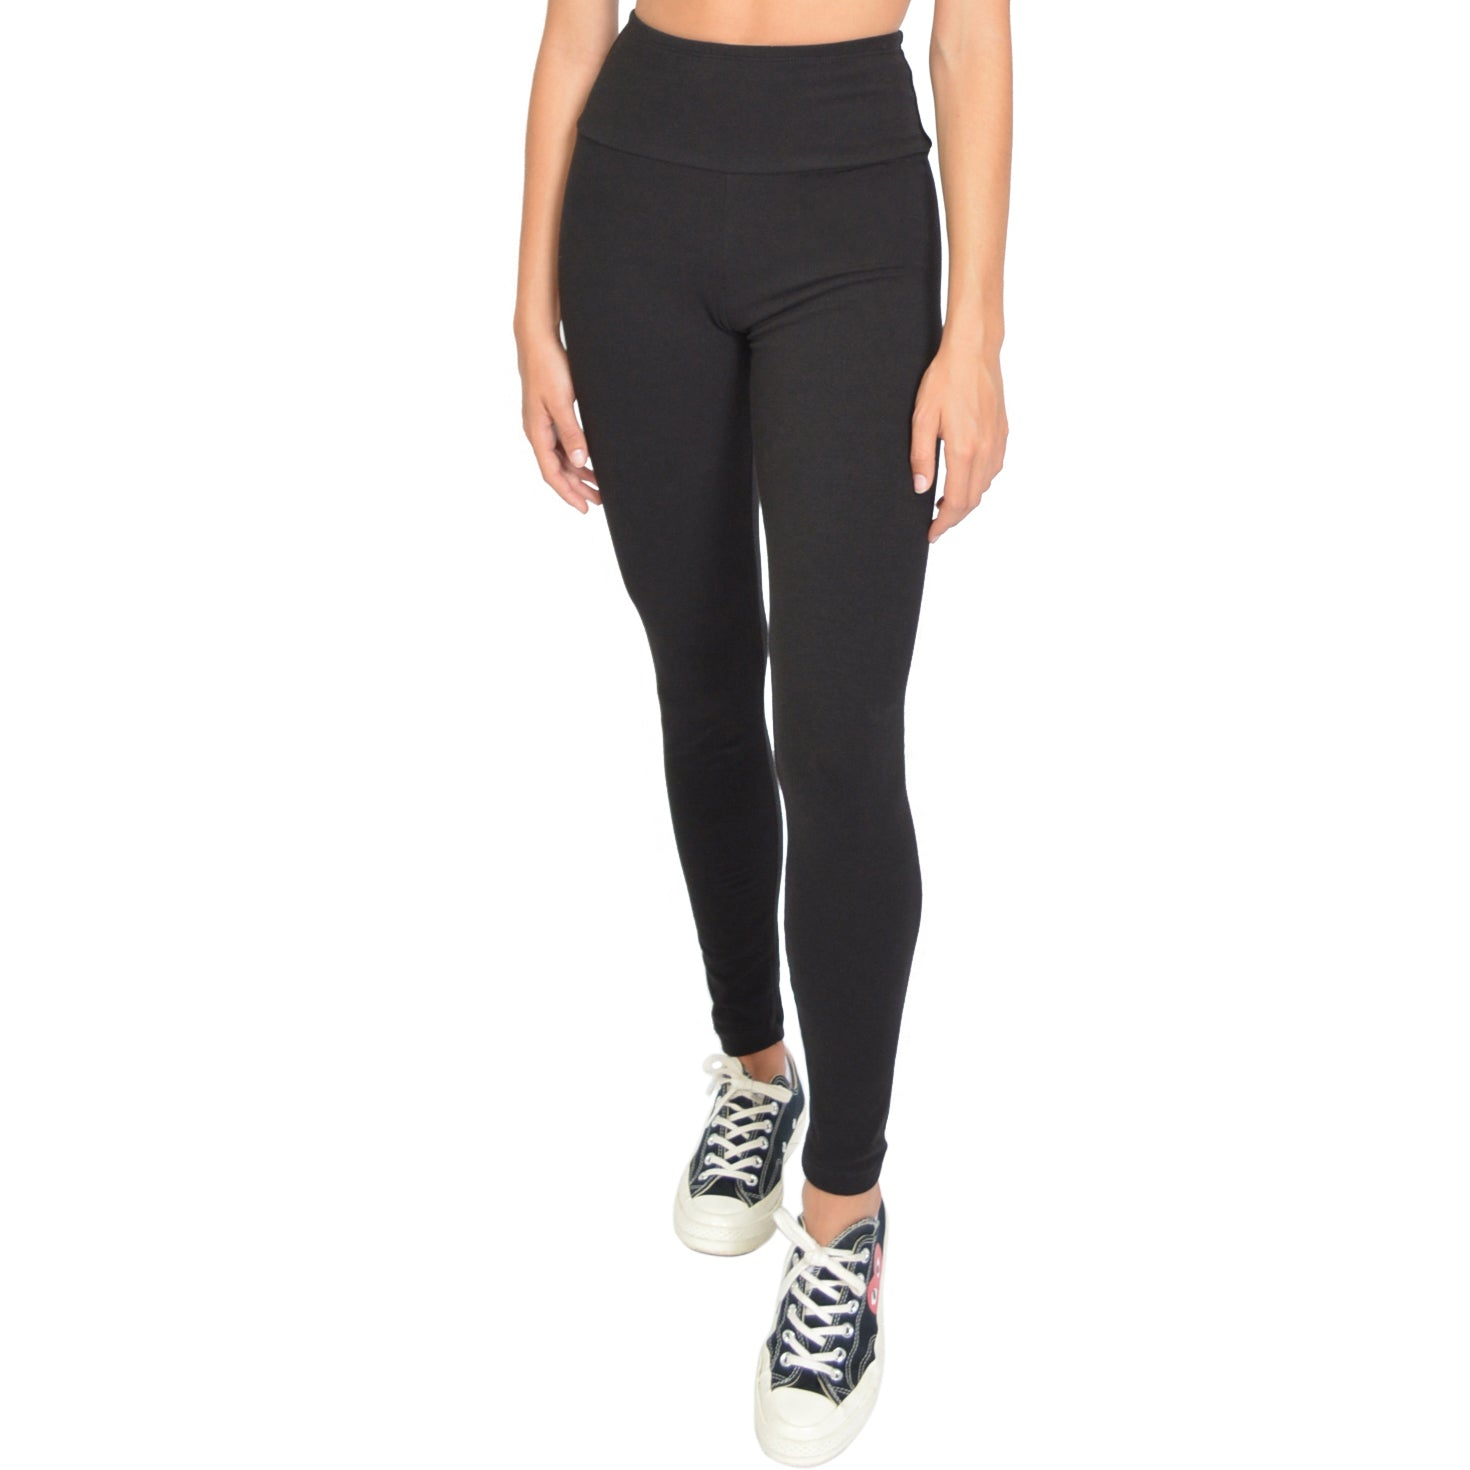 wide selection of colors highly coveted range of limited guantity Women's High Waist Cotton Stretch Leggings